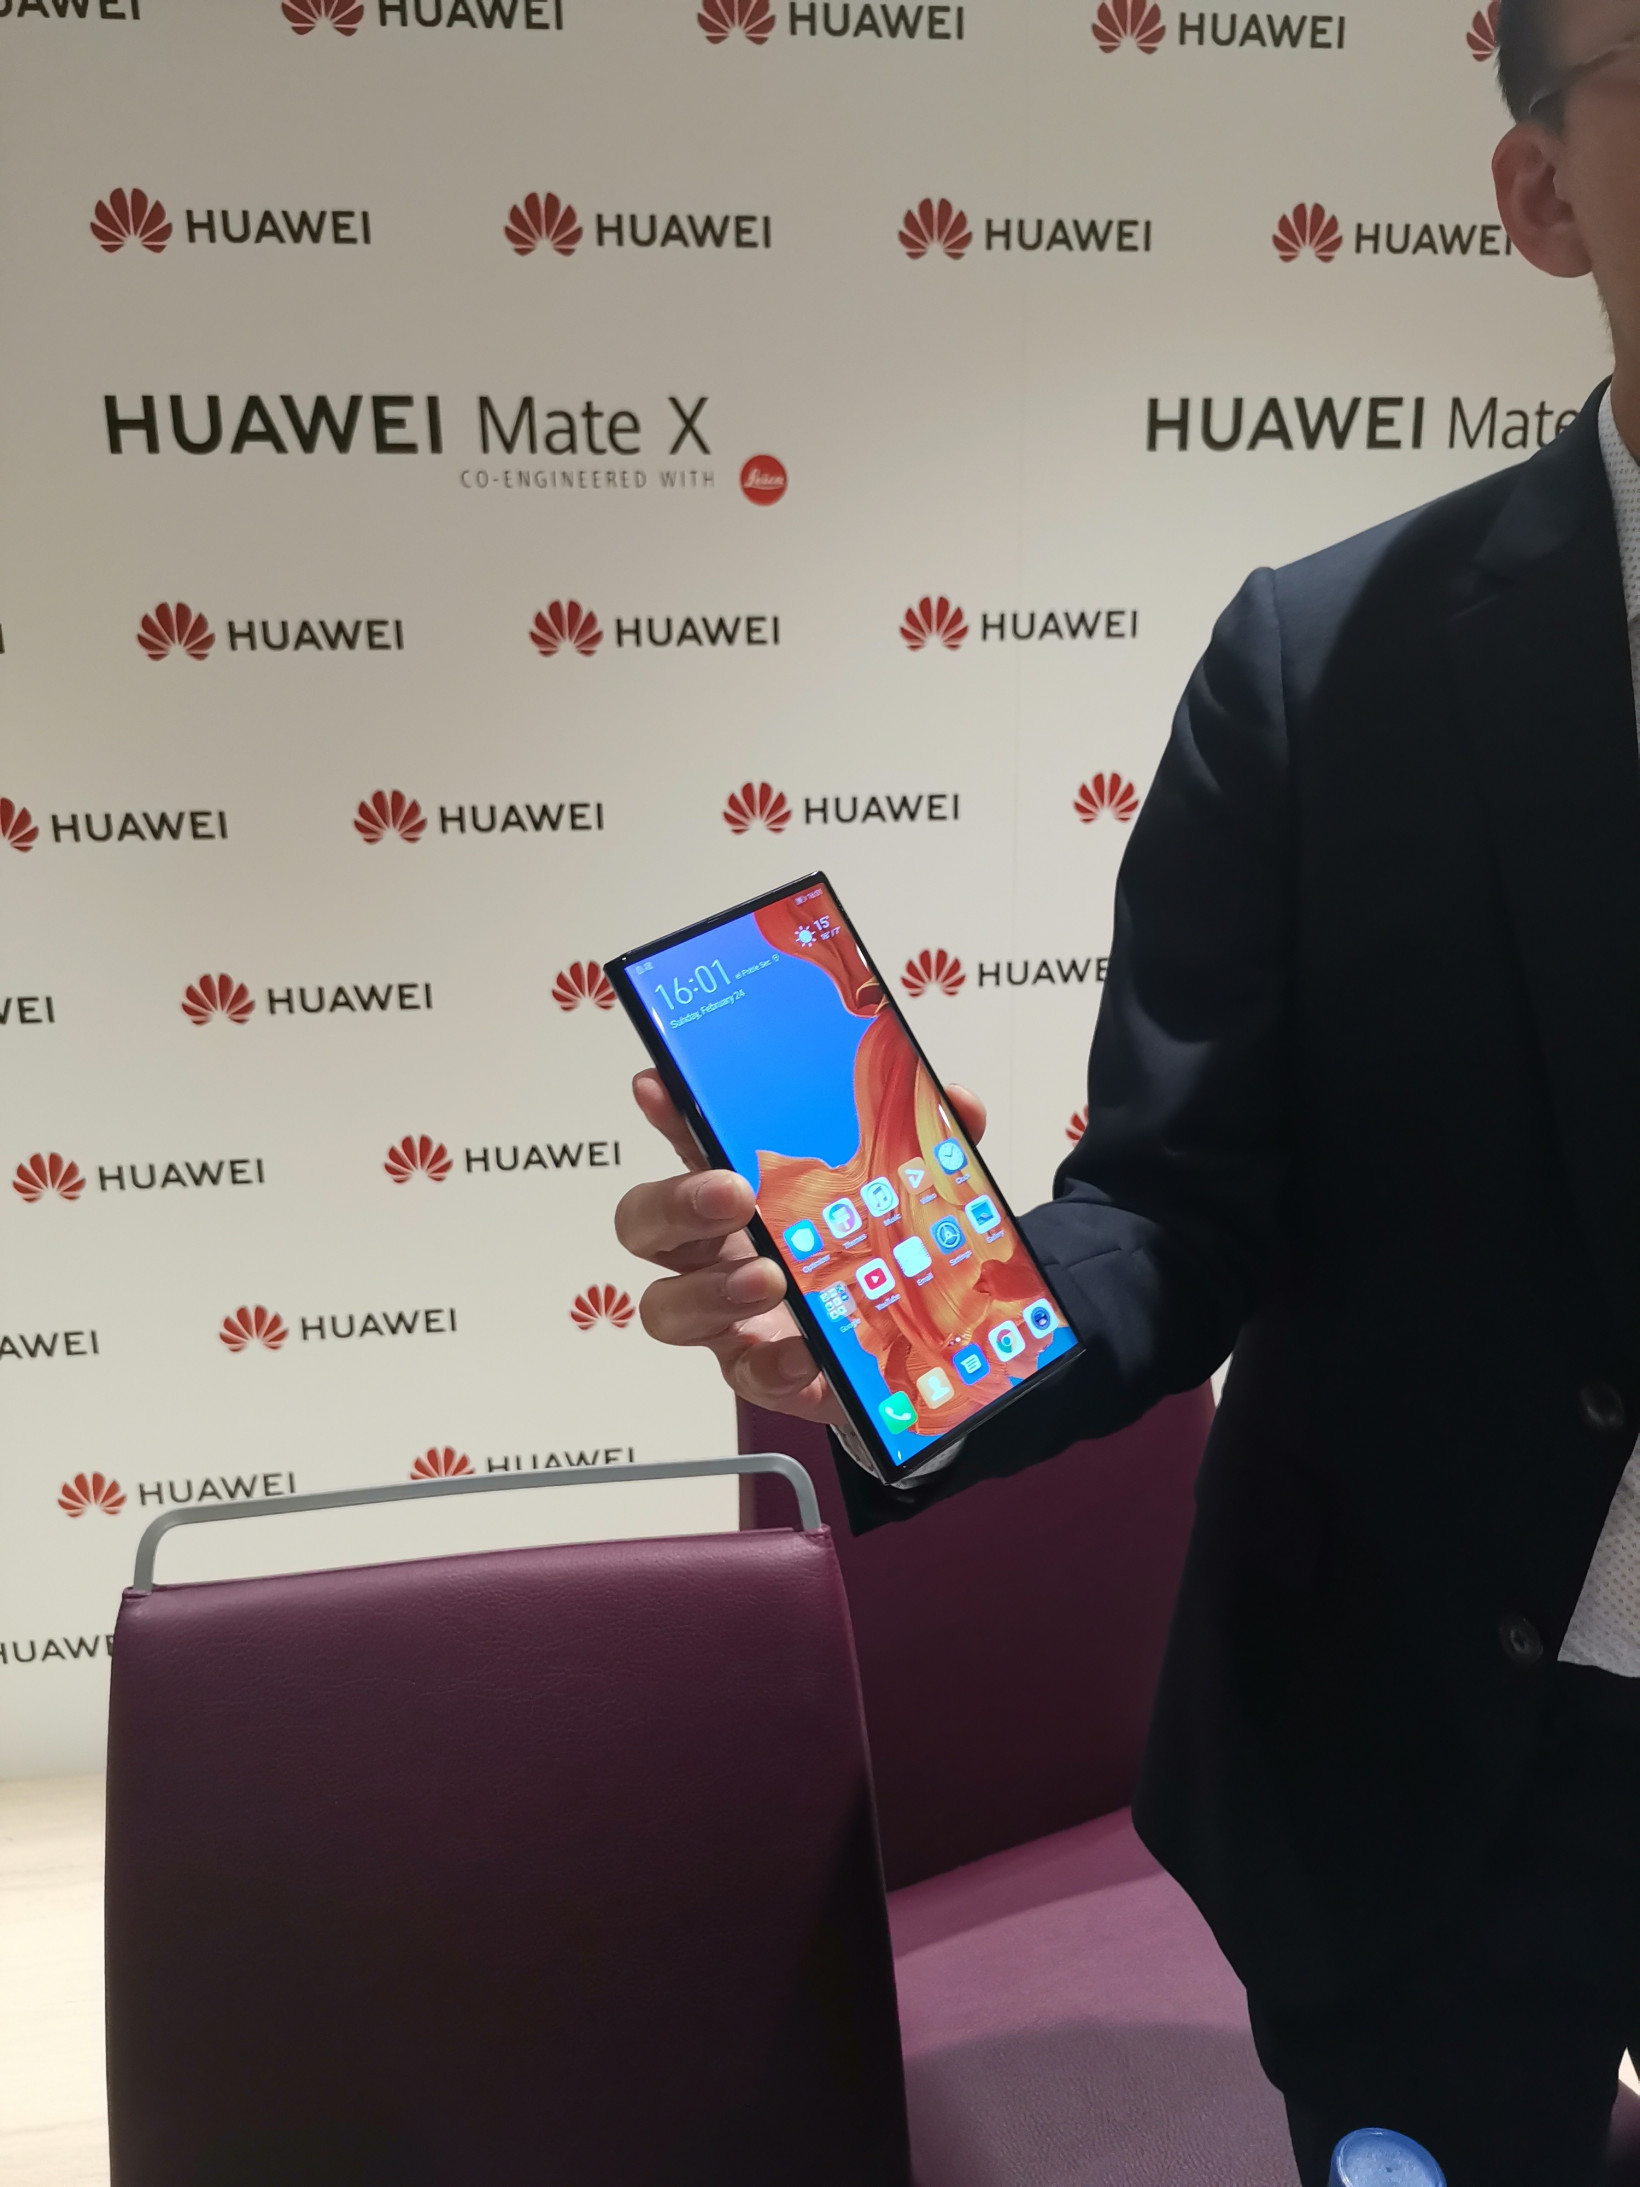 First look at the Huawei Mate X: attractive, powerful, and